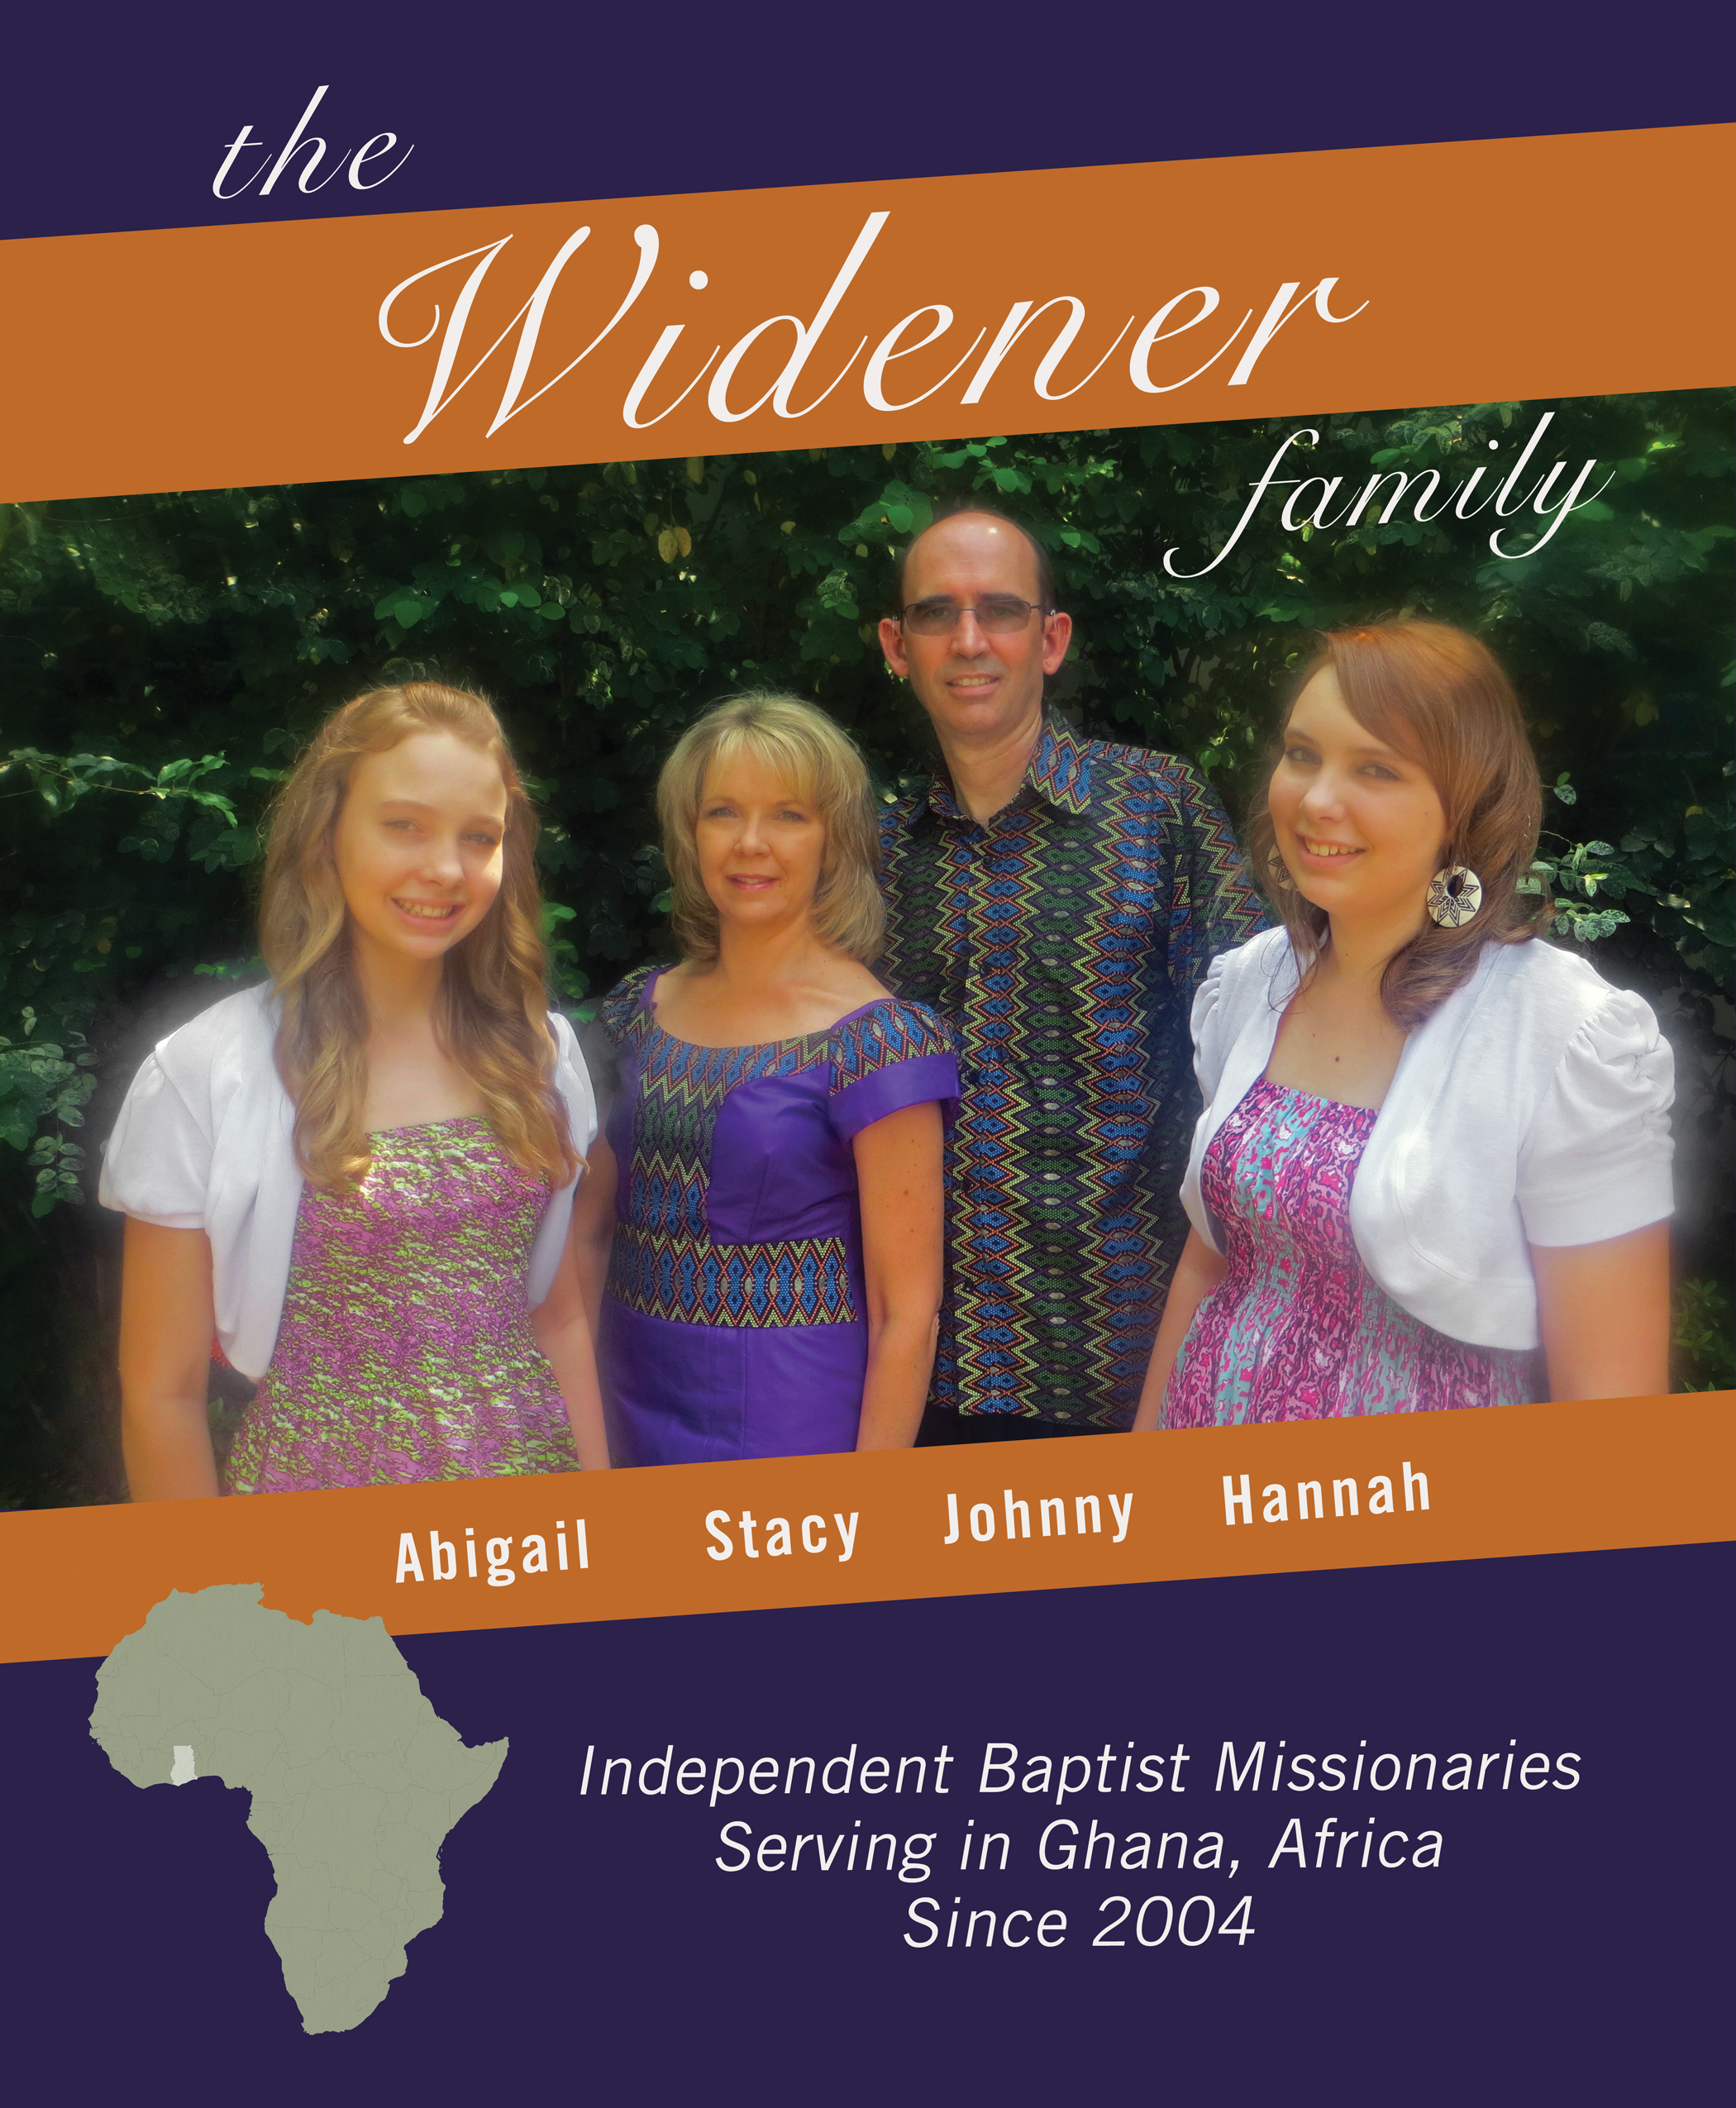 Independent Baptist Missionaries For Asians